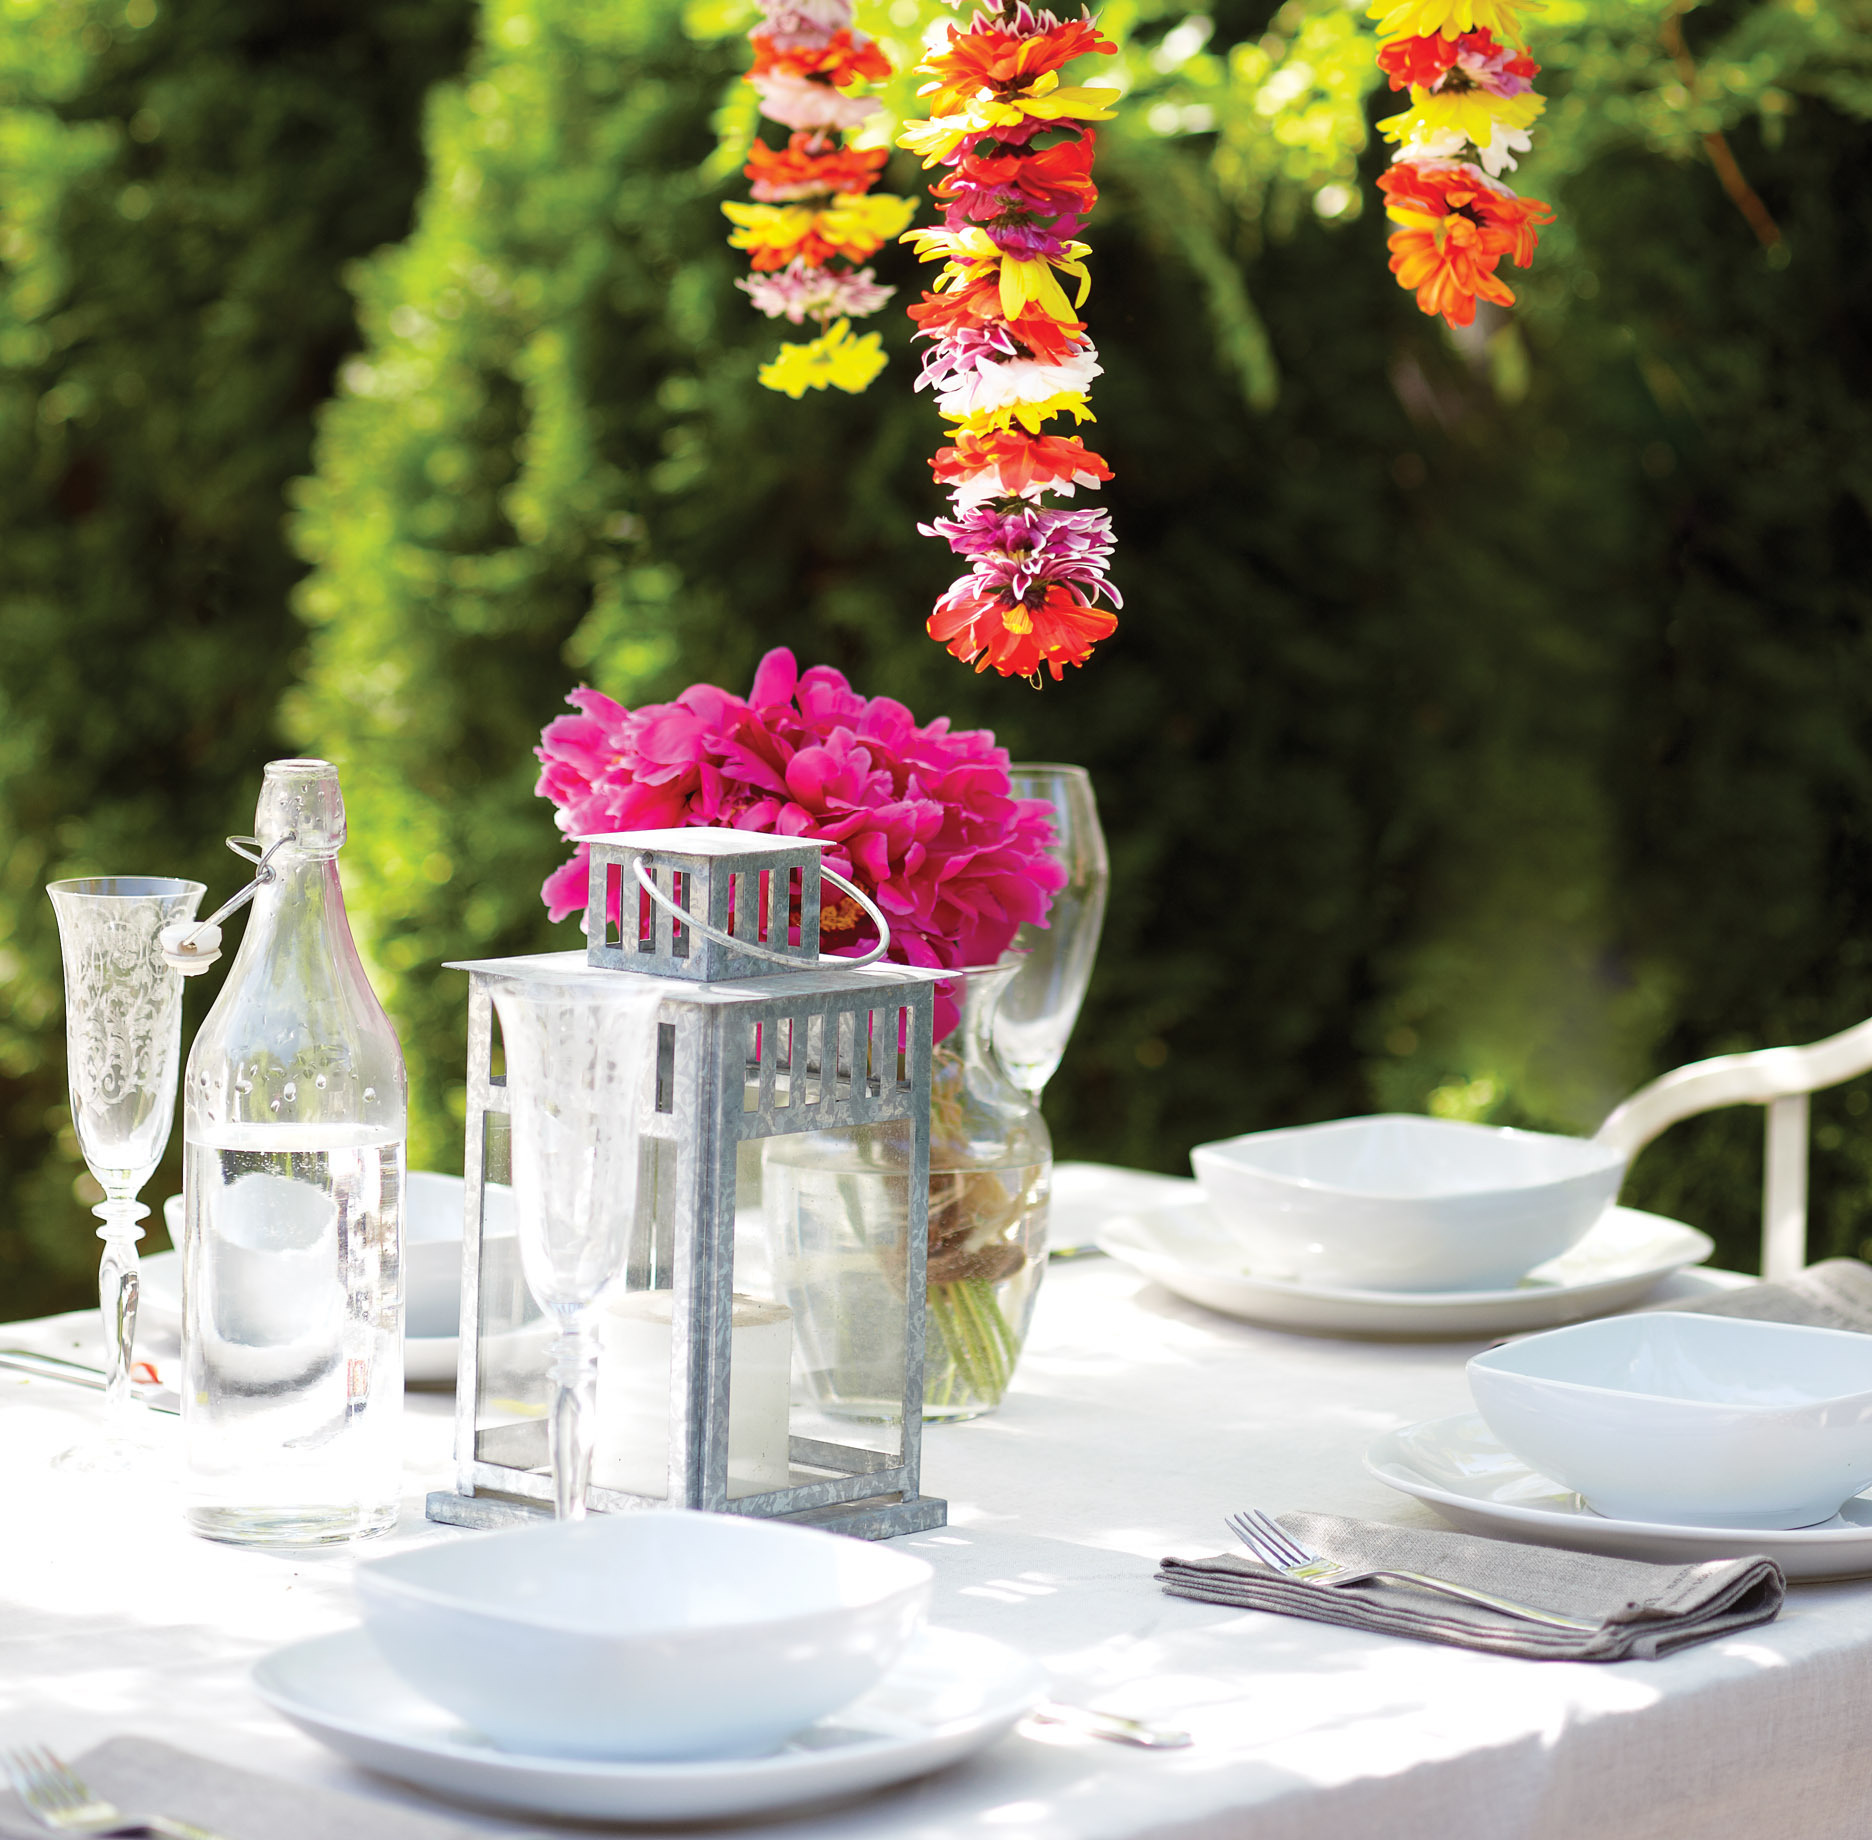 Outdoor table with hanging flowers, white dishware, champagne flutes, flower garlands, backyard party, dinner party